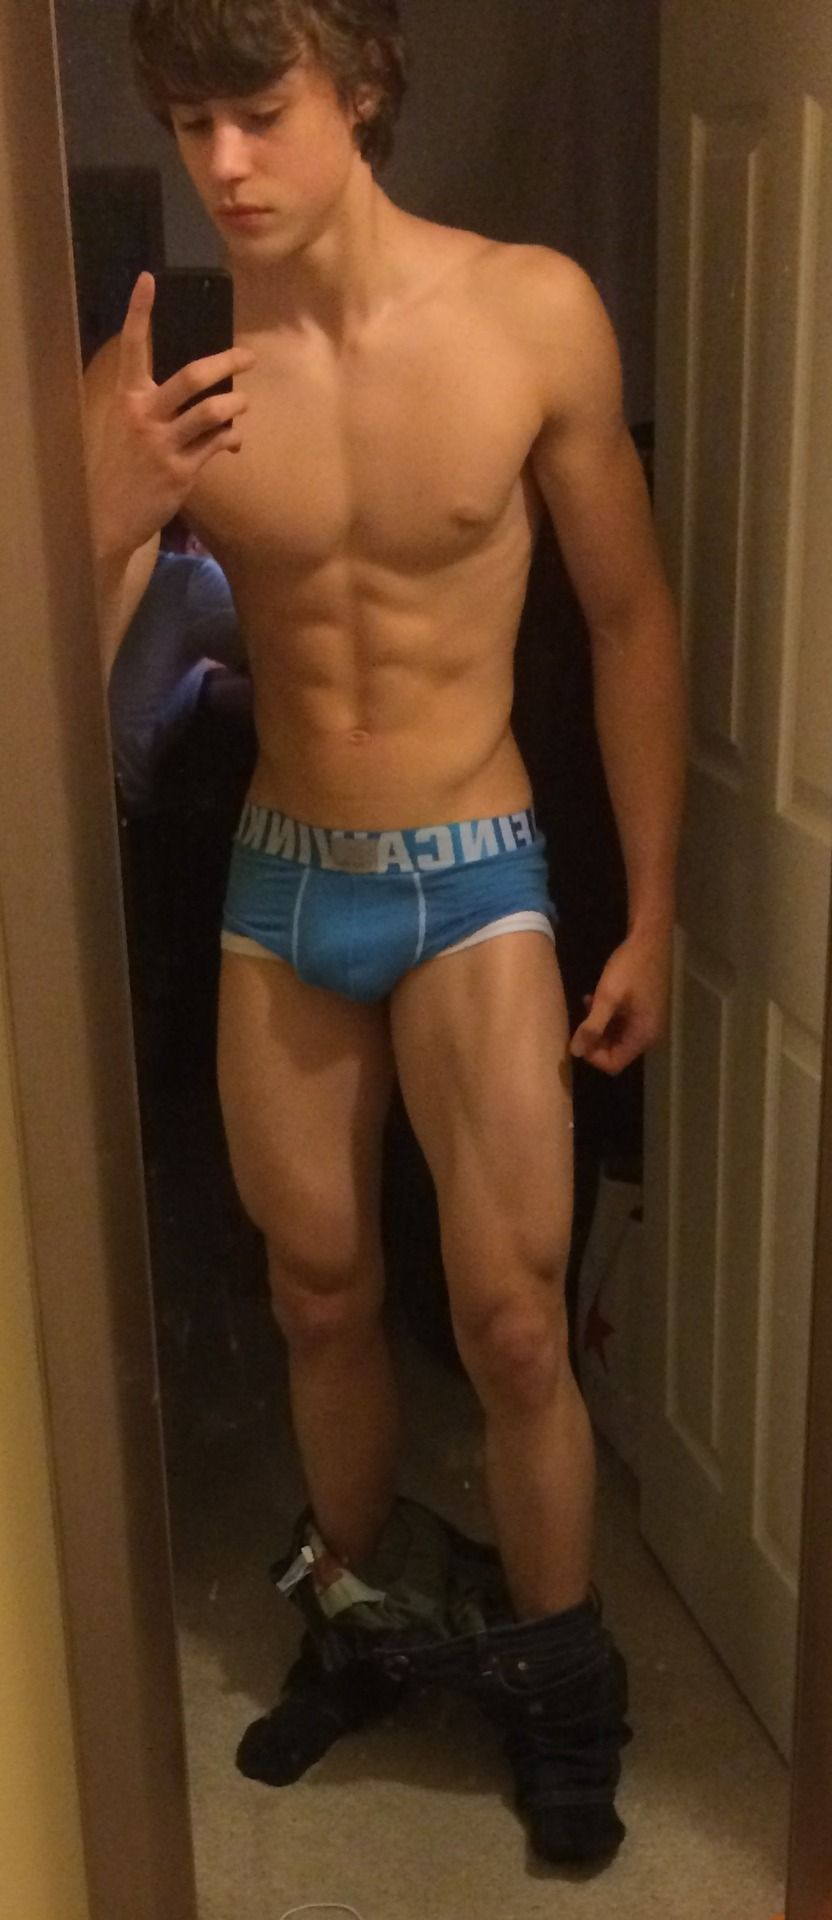 Young Bodybuilder selfie | the gay side | Pinterest